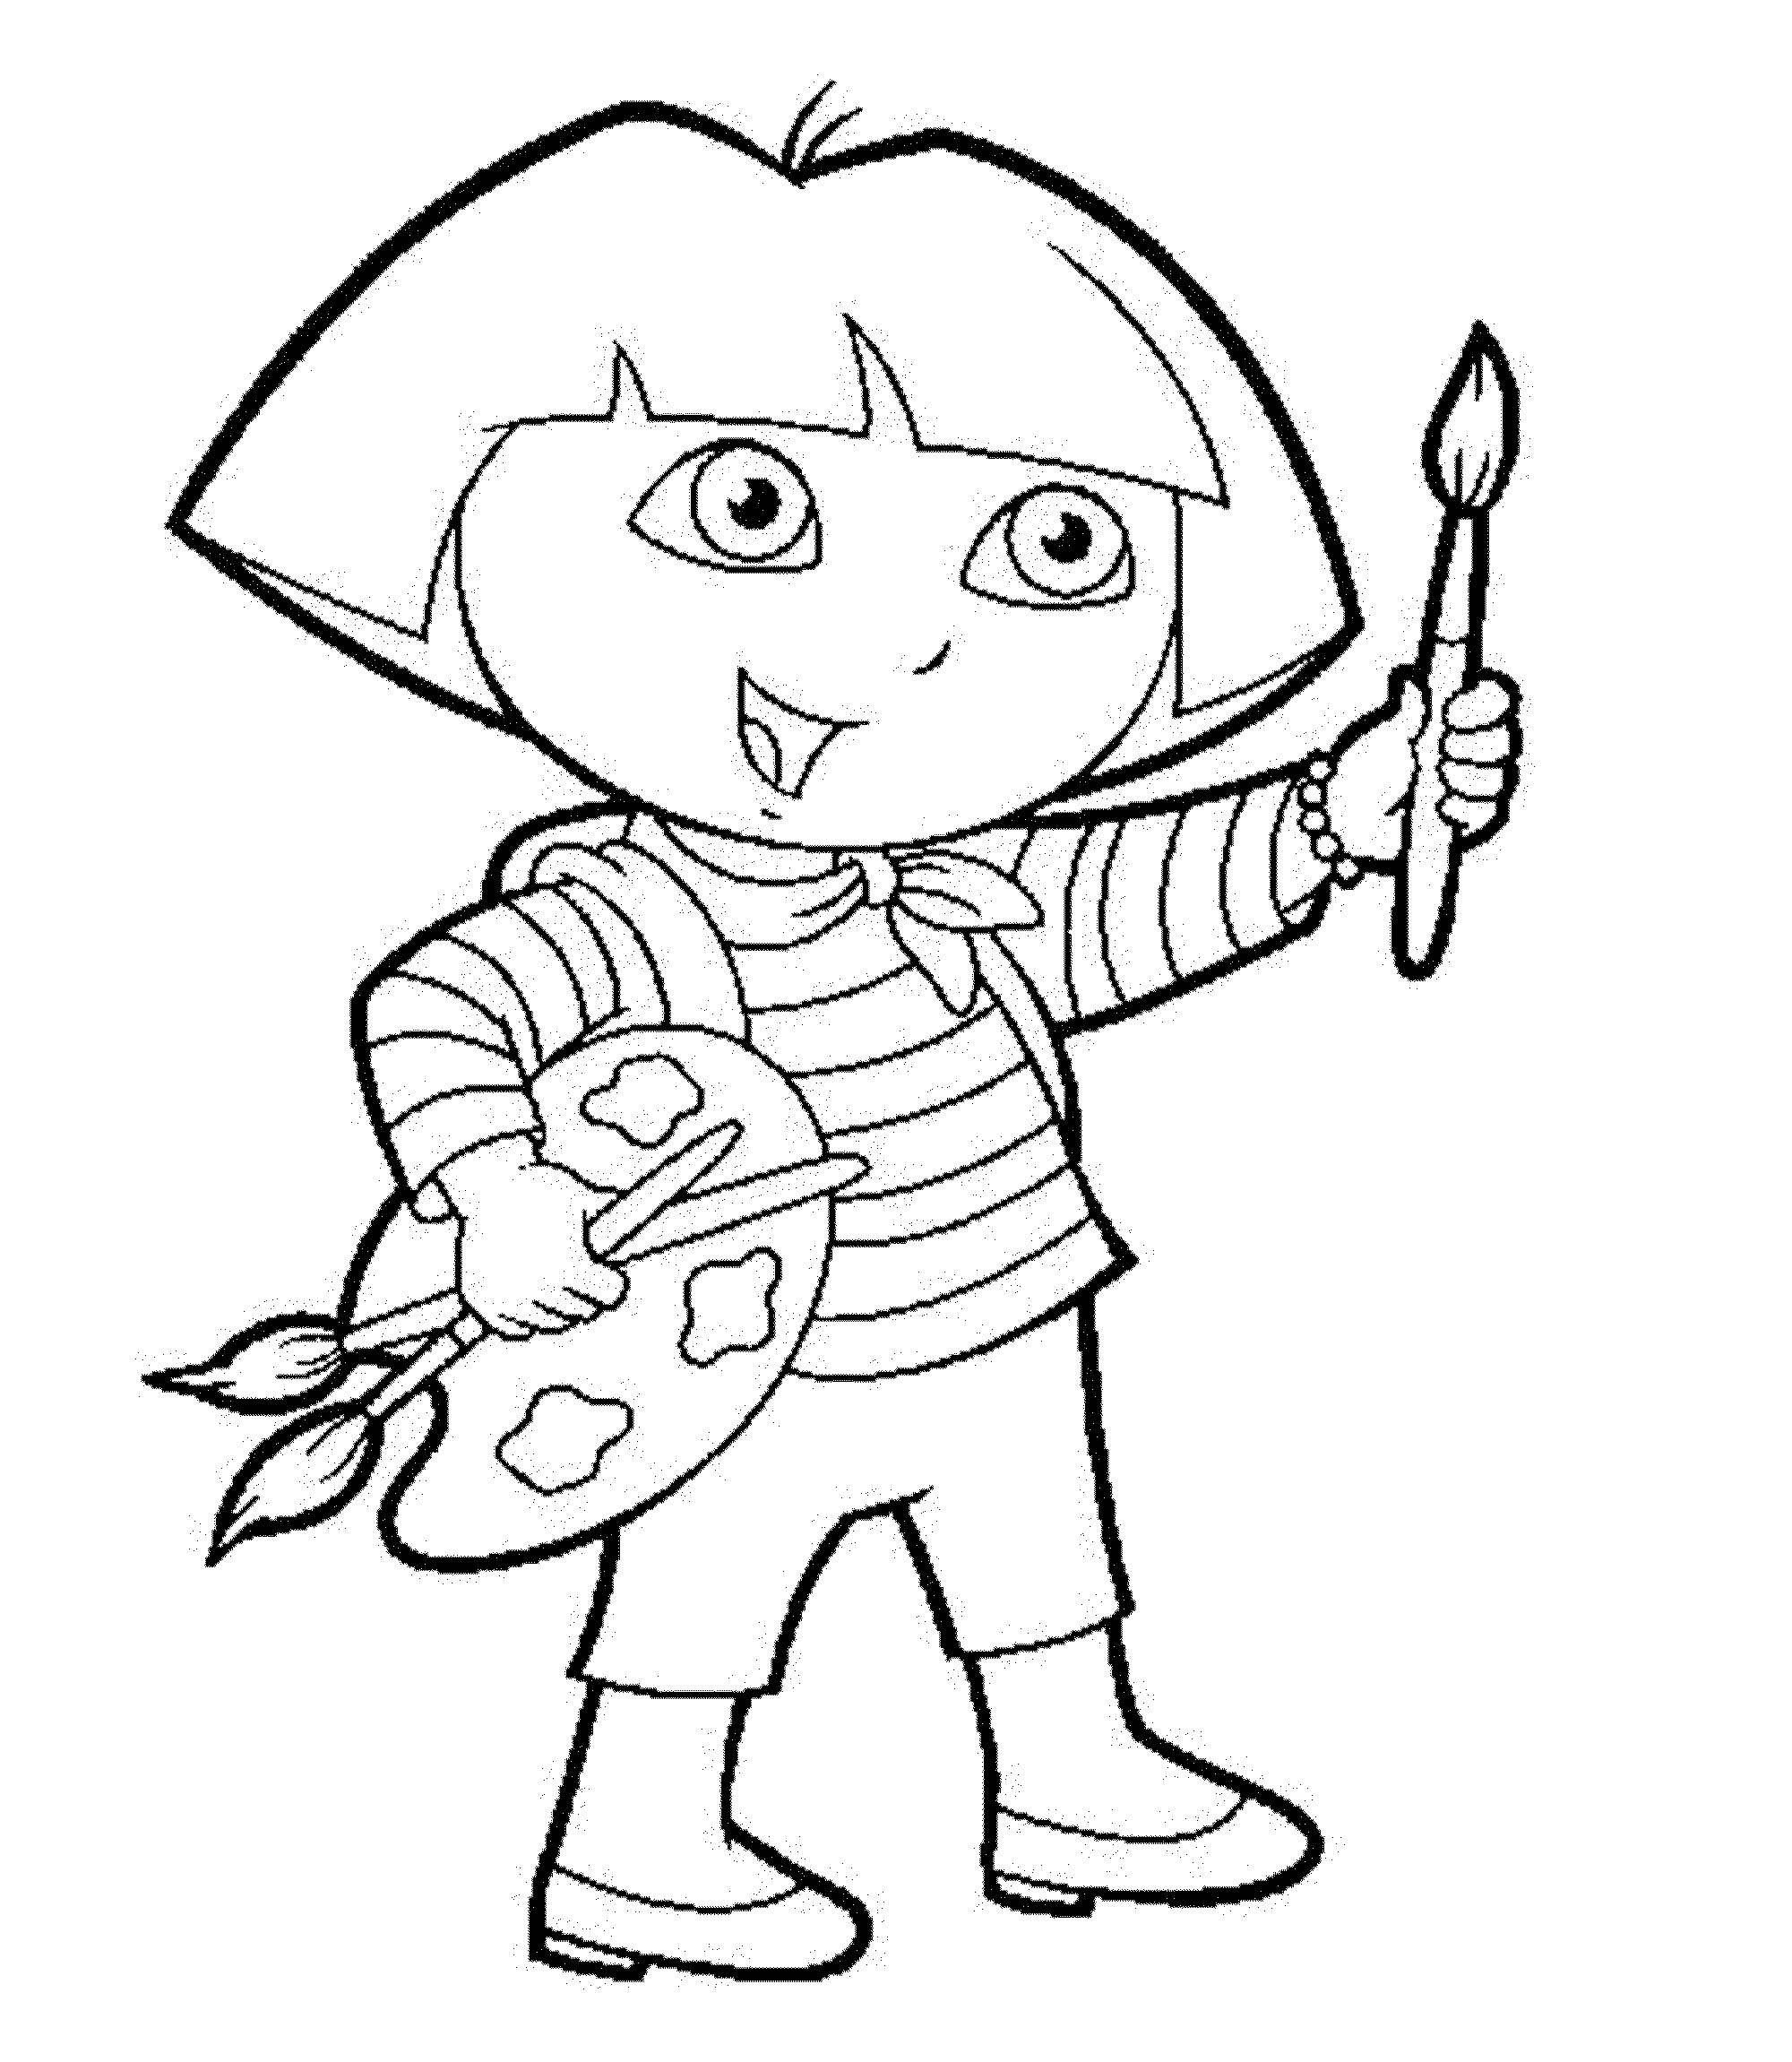 dora colouring pictures print download dora coloring pages to learn new things dora colouring pictures 1 1